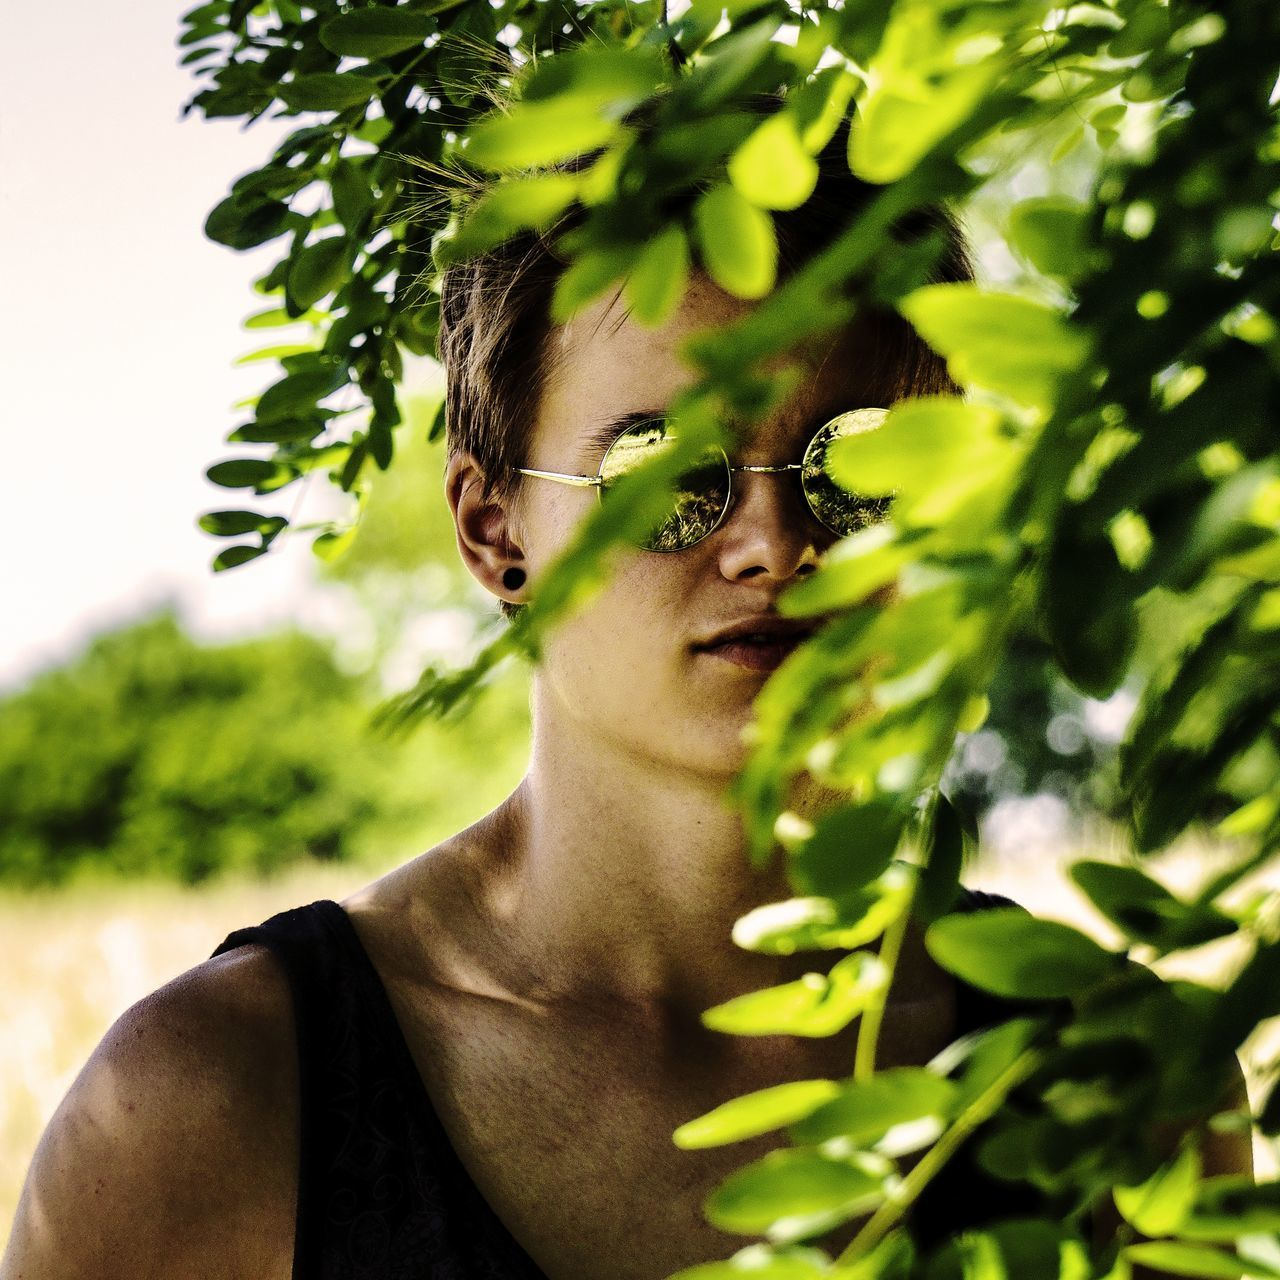 Beauté masquée. Green Color Headshot Young Adult One Person Adult Tree Human Body Part Close-up Portrait People Human Face Nature Real People Sunglasses Looking At Camera